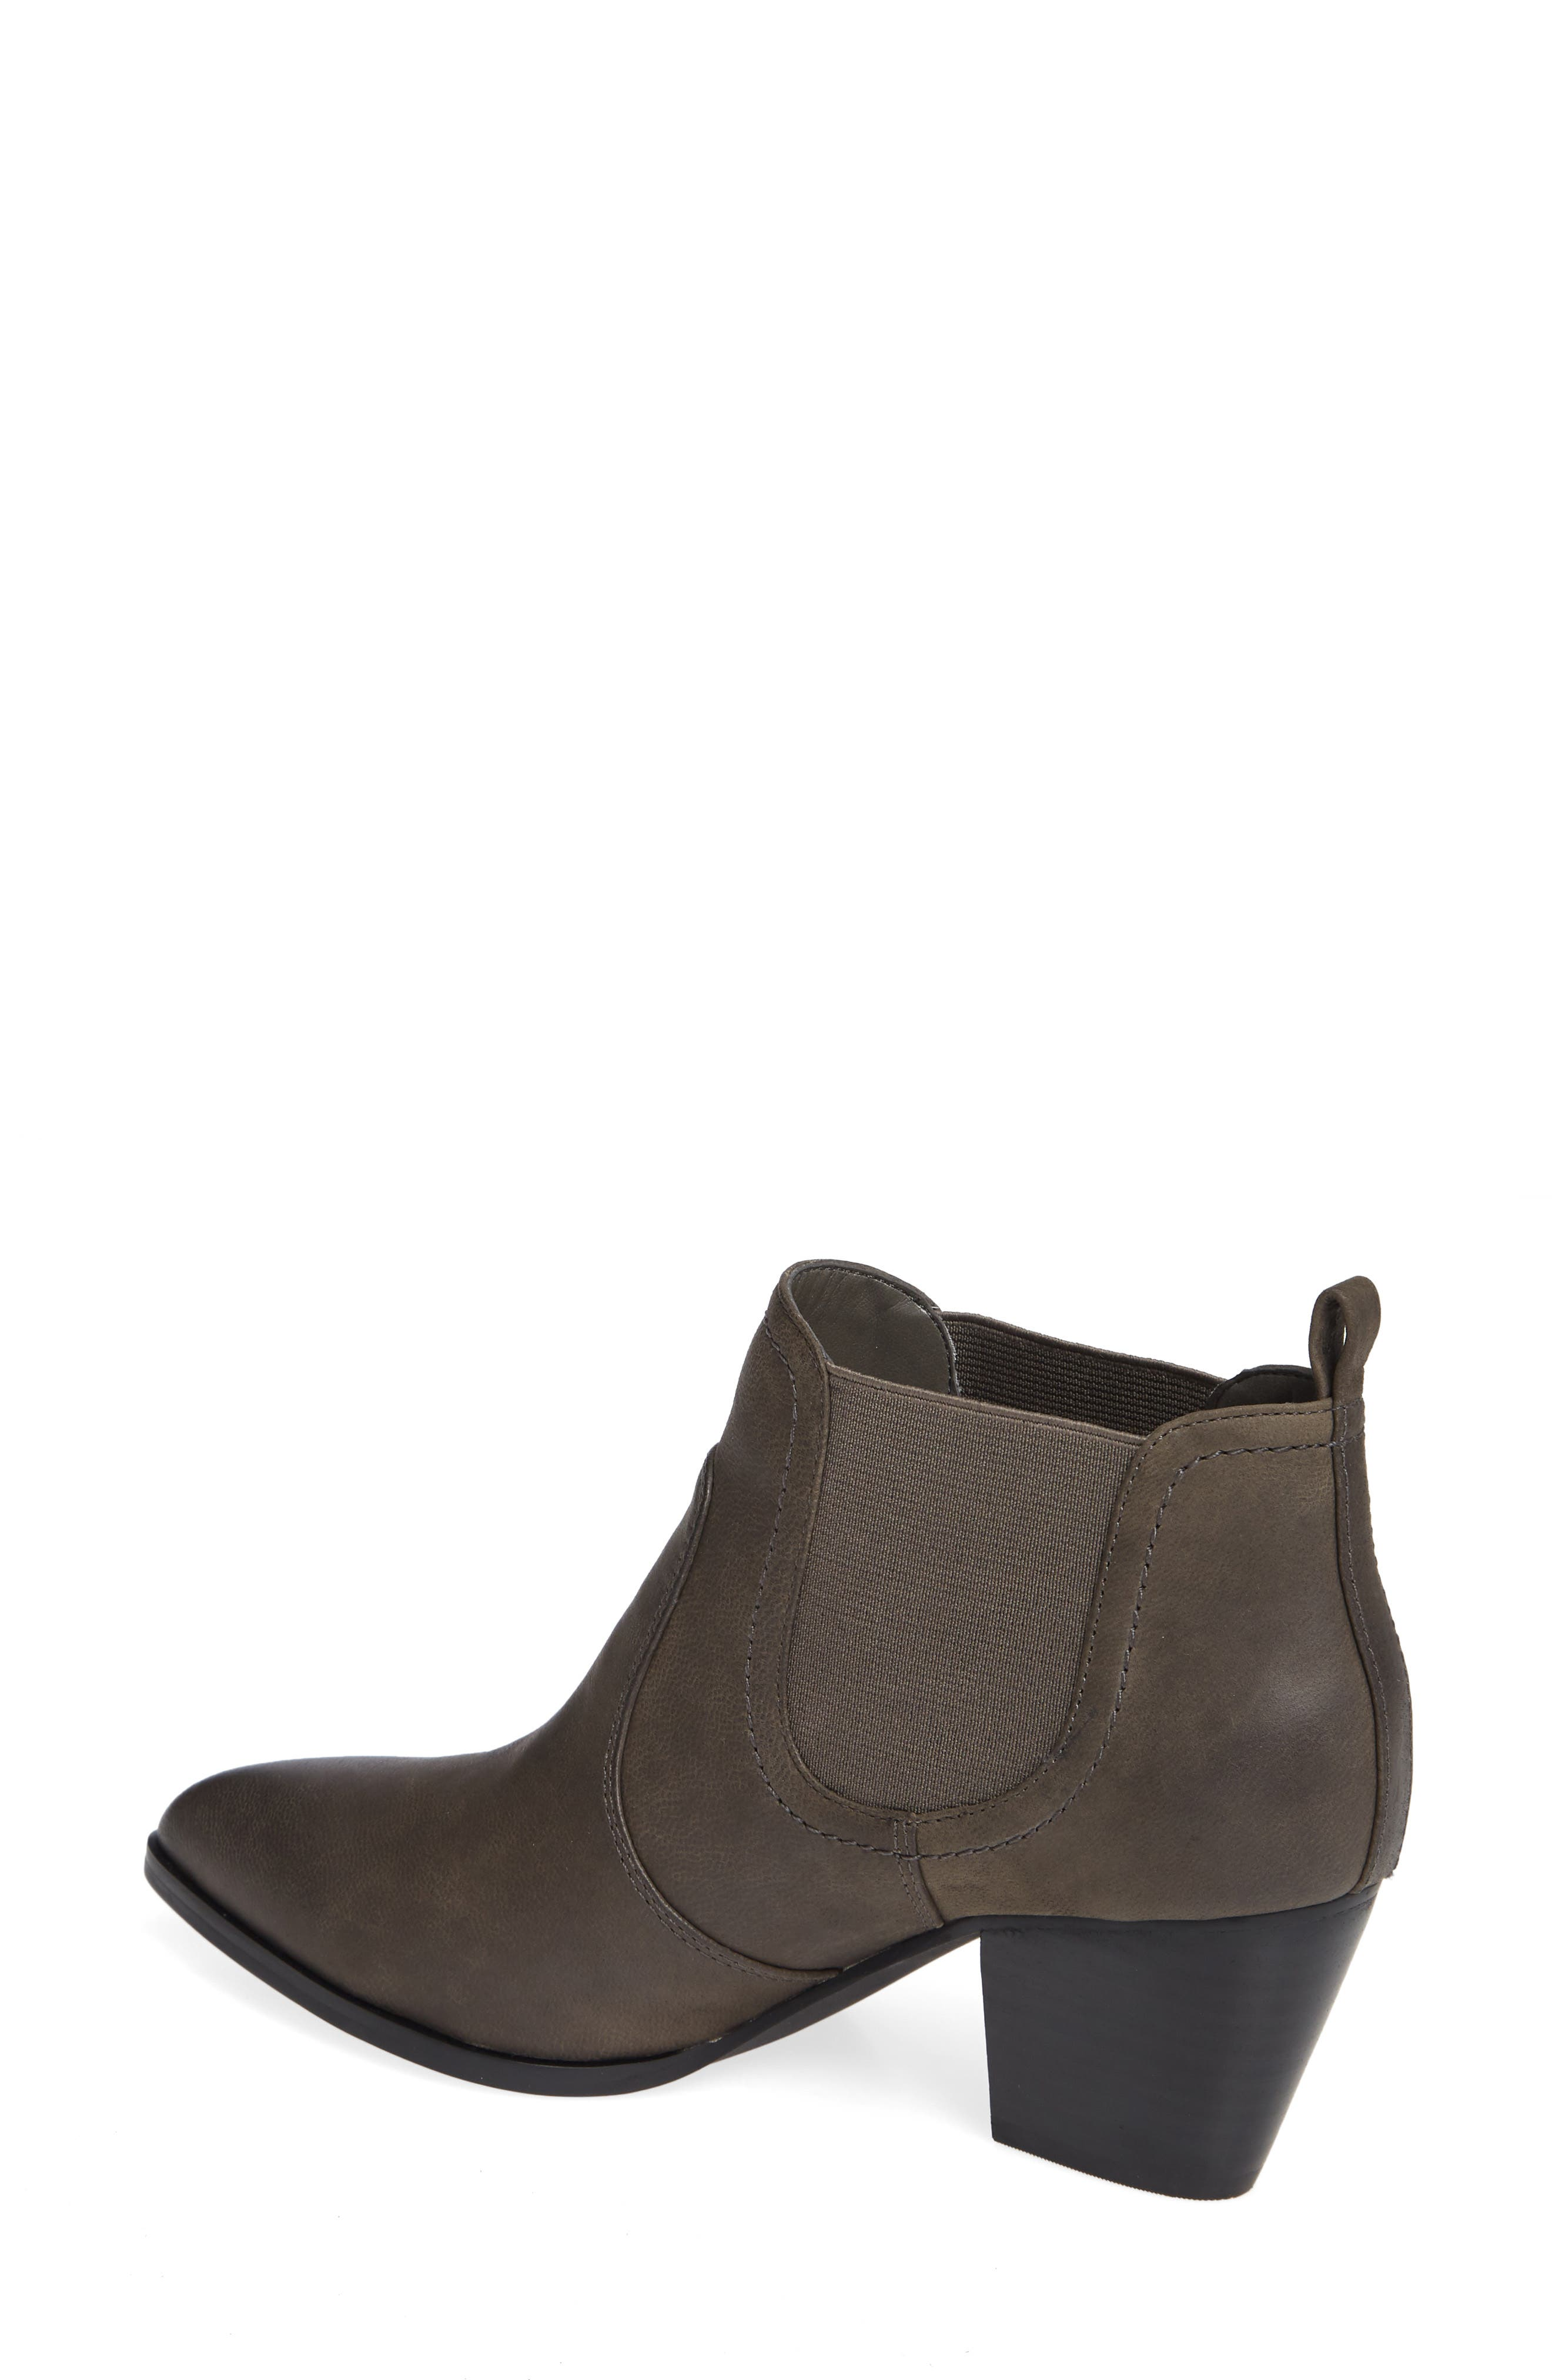 Emerson Chelsea Bootie,                             Alternate thumbnail 2, color,                             GREY BURNISHED LEATHER